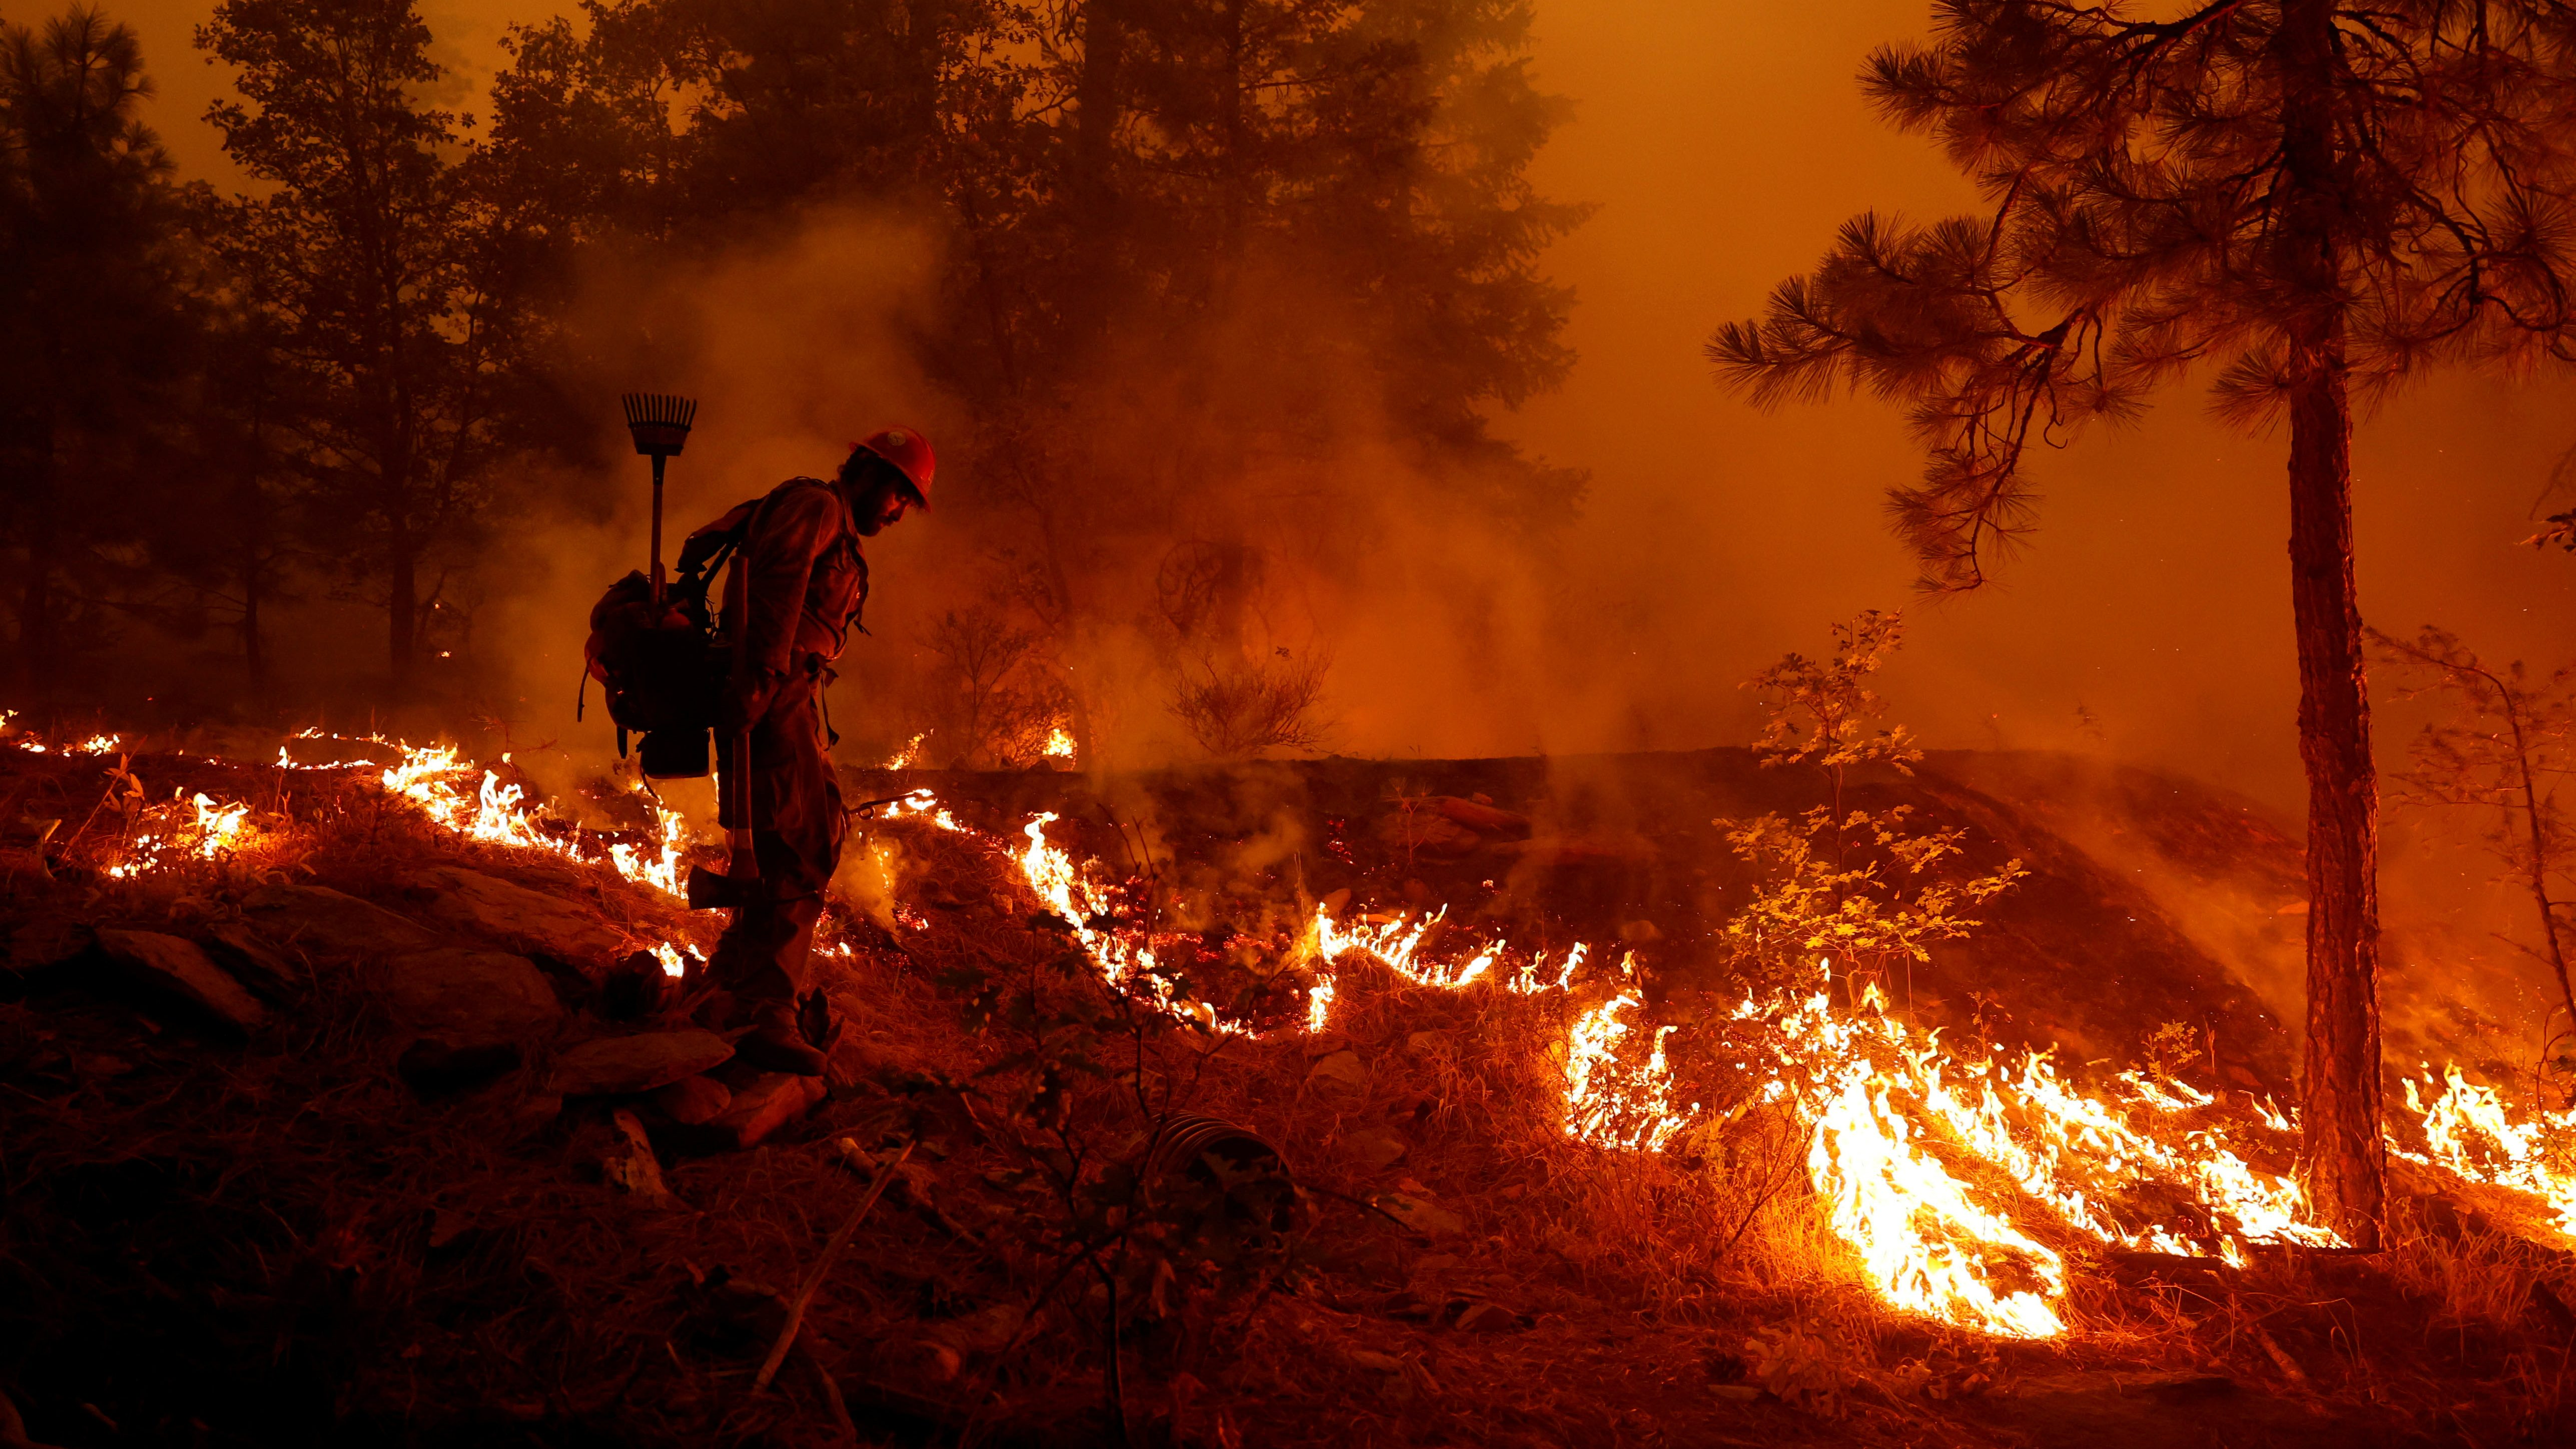 The drought and heat that are fueling record wildfires in California are almost certainly the result of climate change, IPCC scientists say.